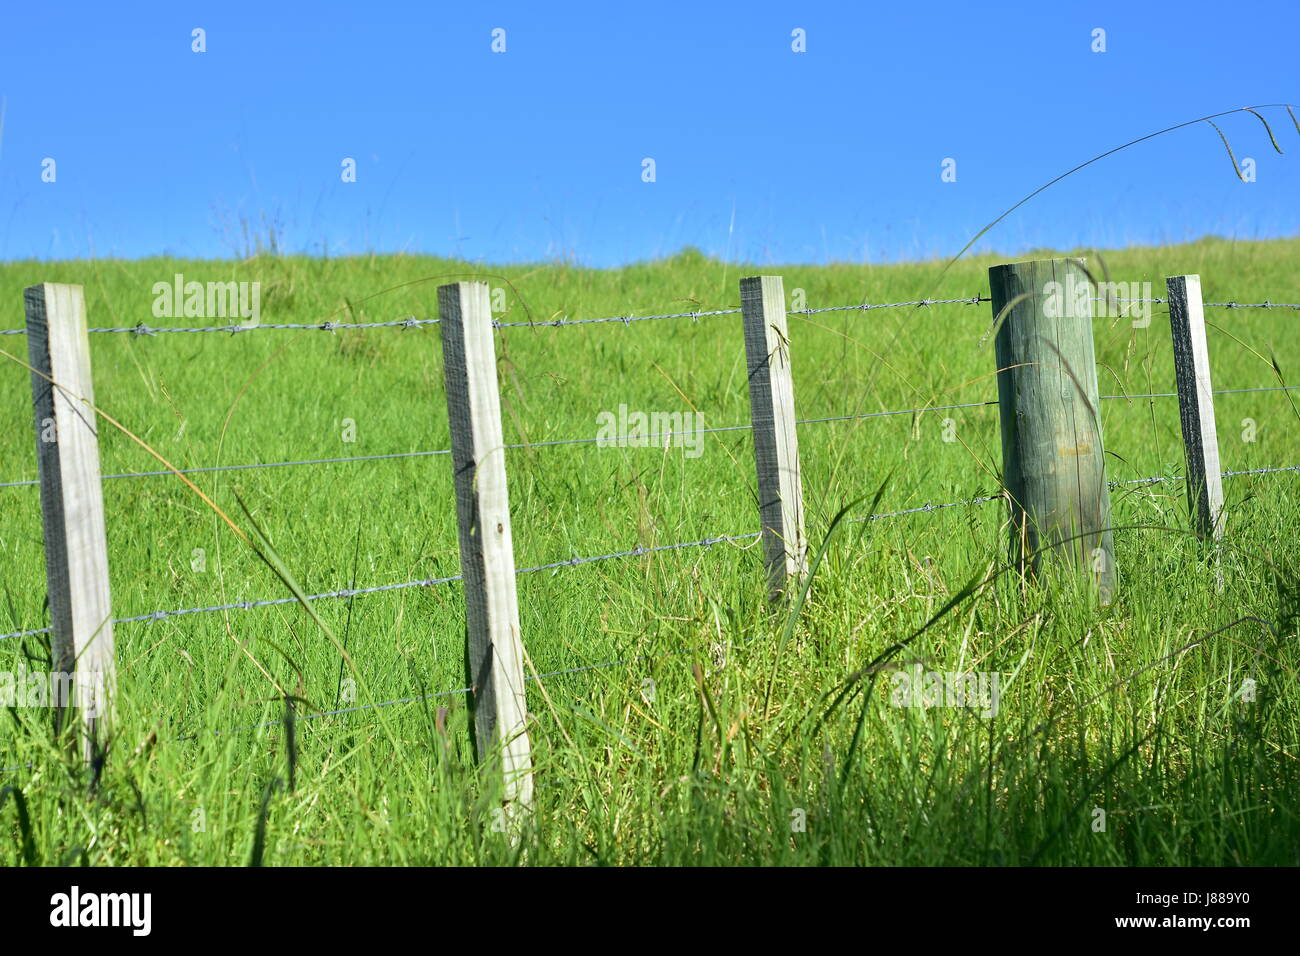 Fence from barbed steel wire between wooden poles dividing green pasture on sunny day with blue sky. - Stock Image